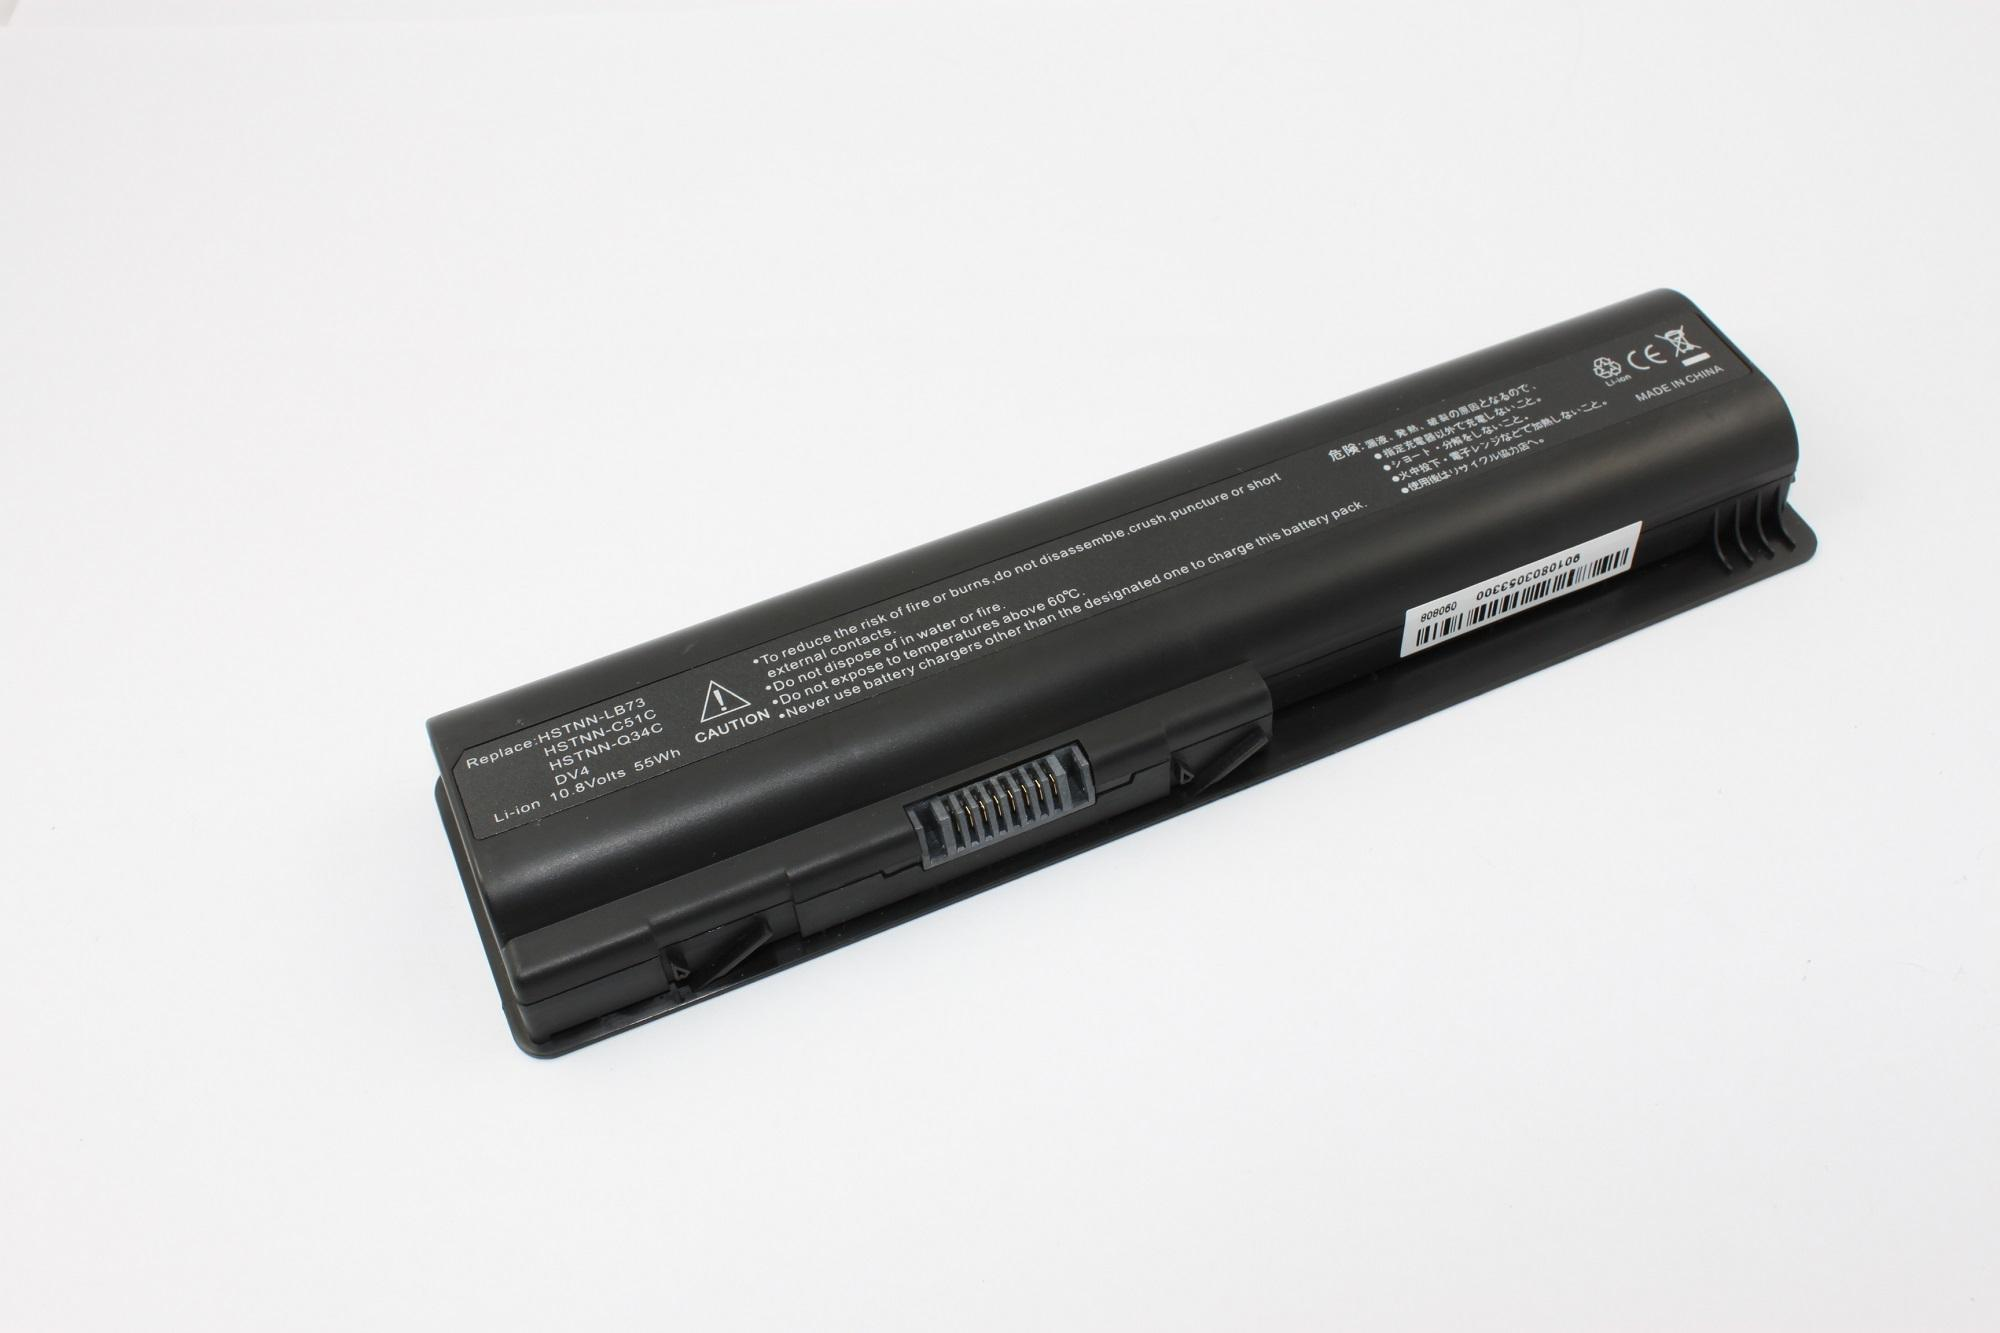 Replacement Laptop Battery for HP DV4 compatible with Compaq Presario CQ40 Series, Presario CQ45 Series, Presario CQ50-100 Series, Presario CQ50 Series, Presario CQ60-100 Series, Presario CQ60-200 Series, Presario CQ60-300 Series, Presario CQ60-419WM